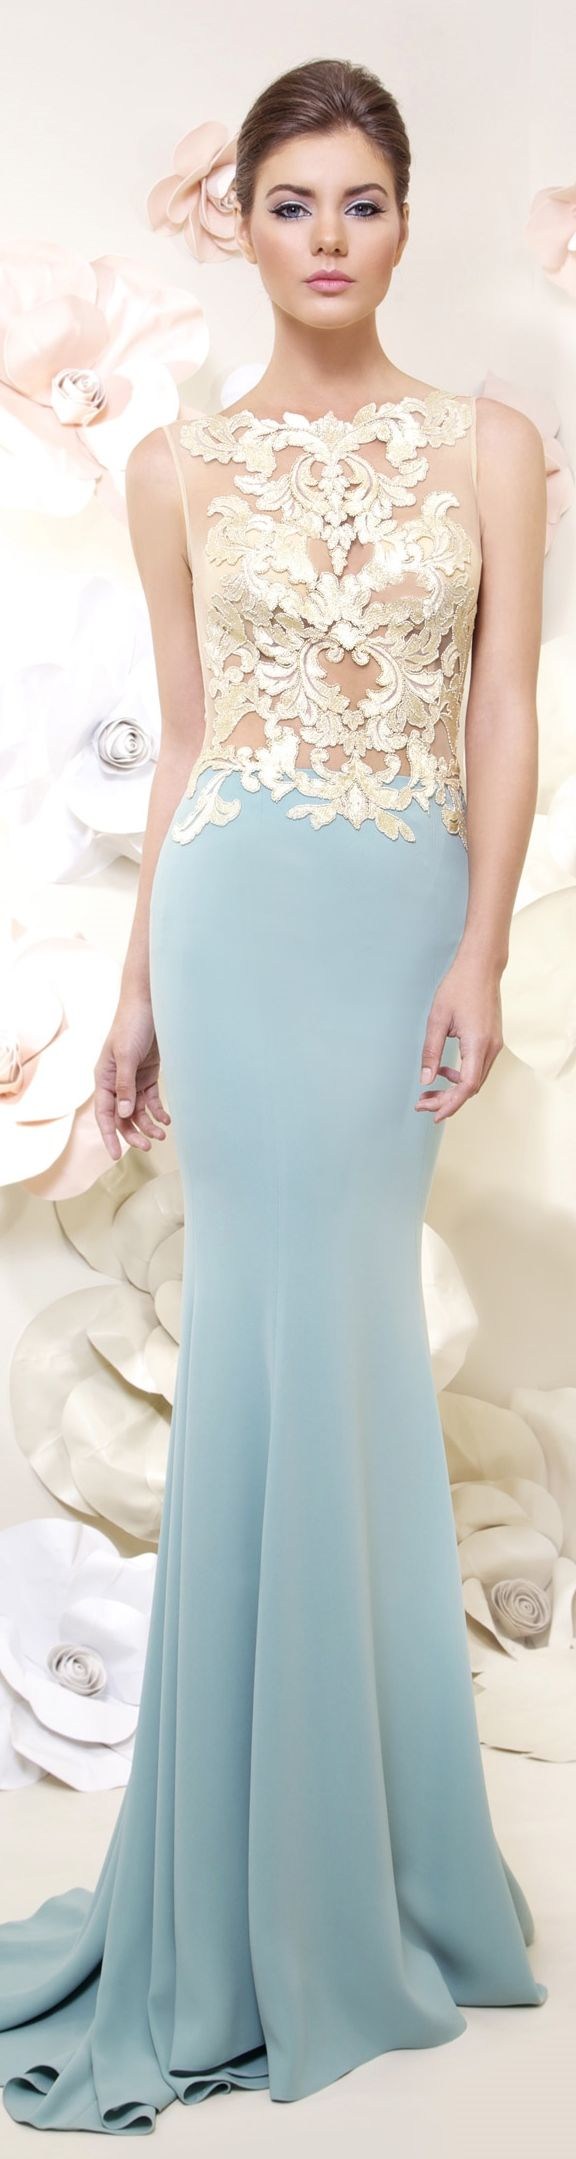 Light Blue Gold Applique Mermaid Trumpet Gown 2014